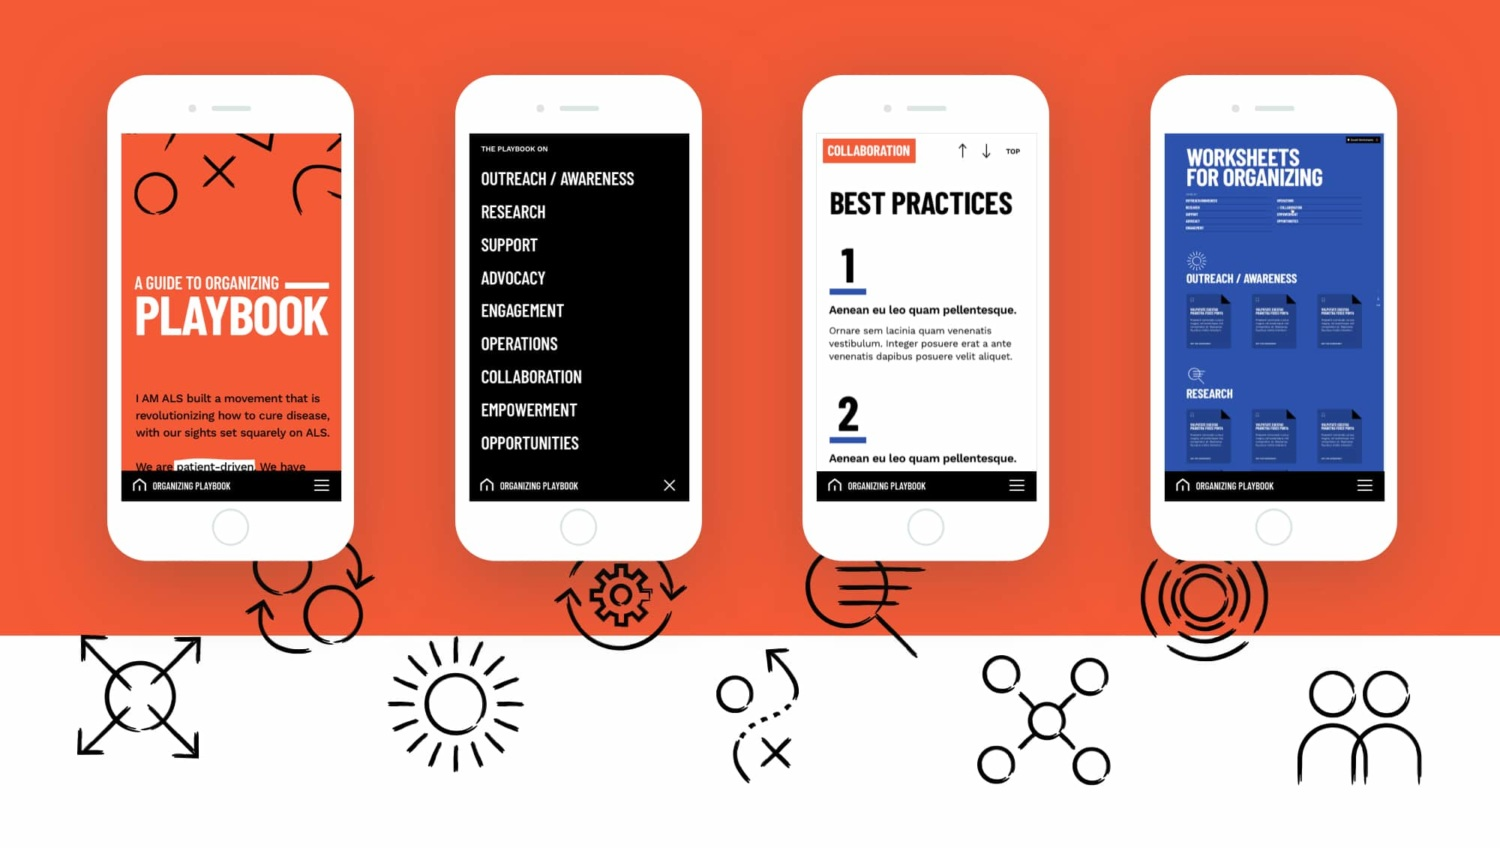 Design compositions set on a mobile device for screens from the Playbook site, arranged horizontally on an orange background. Graphic icons are arranged towards the bottom of the orange background.